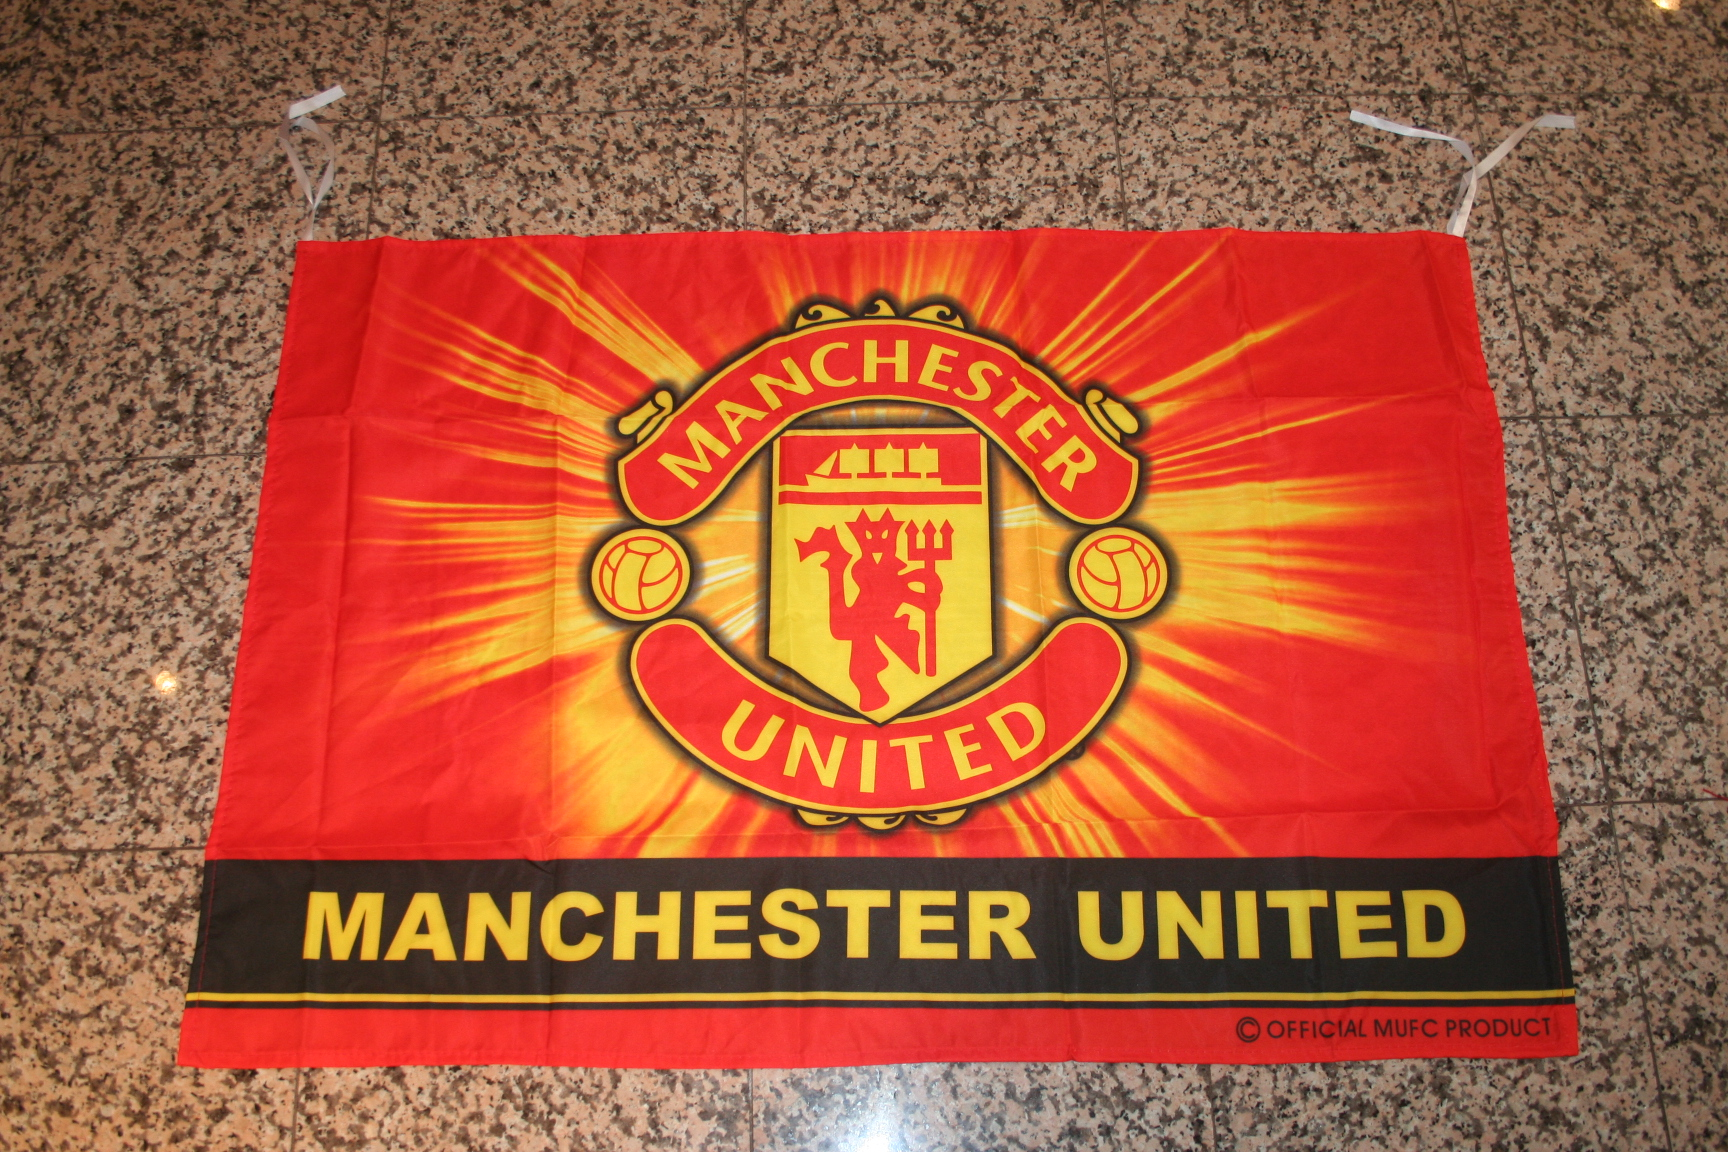 MANCHESTER UNITED FLAG BANNER TAPESTRY FC FOOTBALL CLUB MERCHANDISE APPAREL